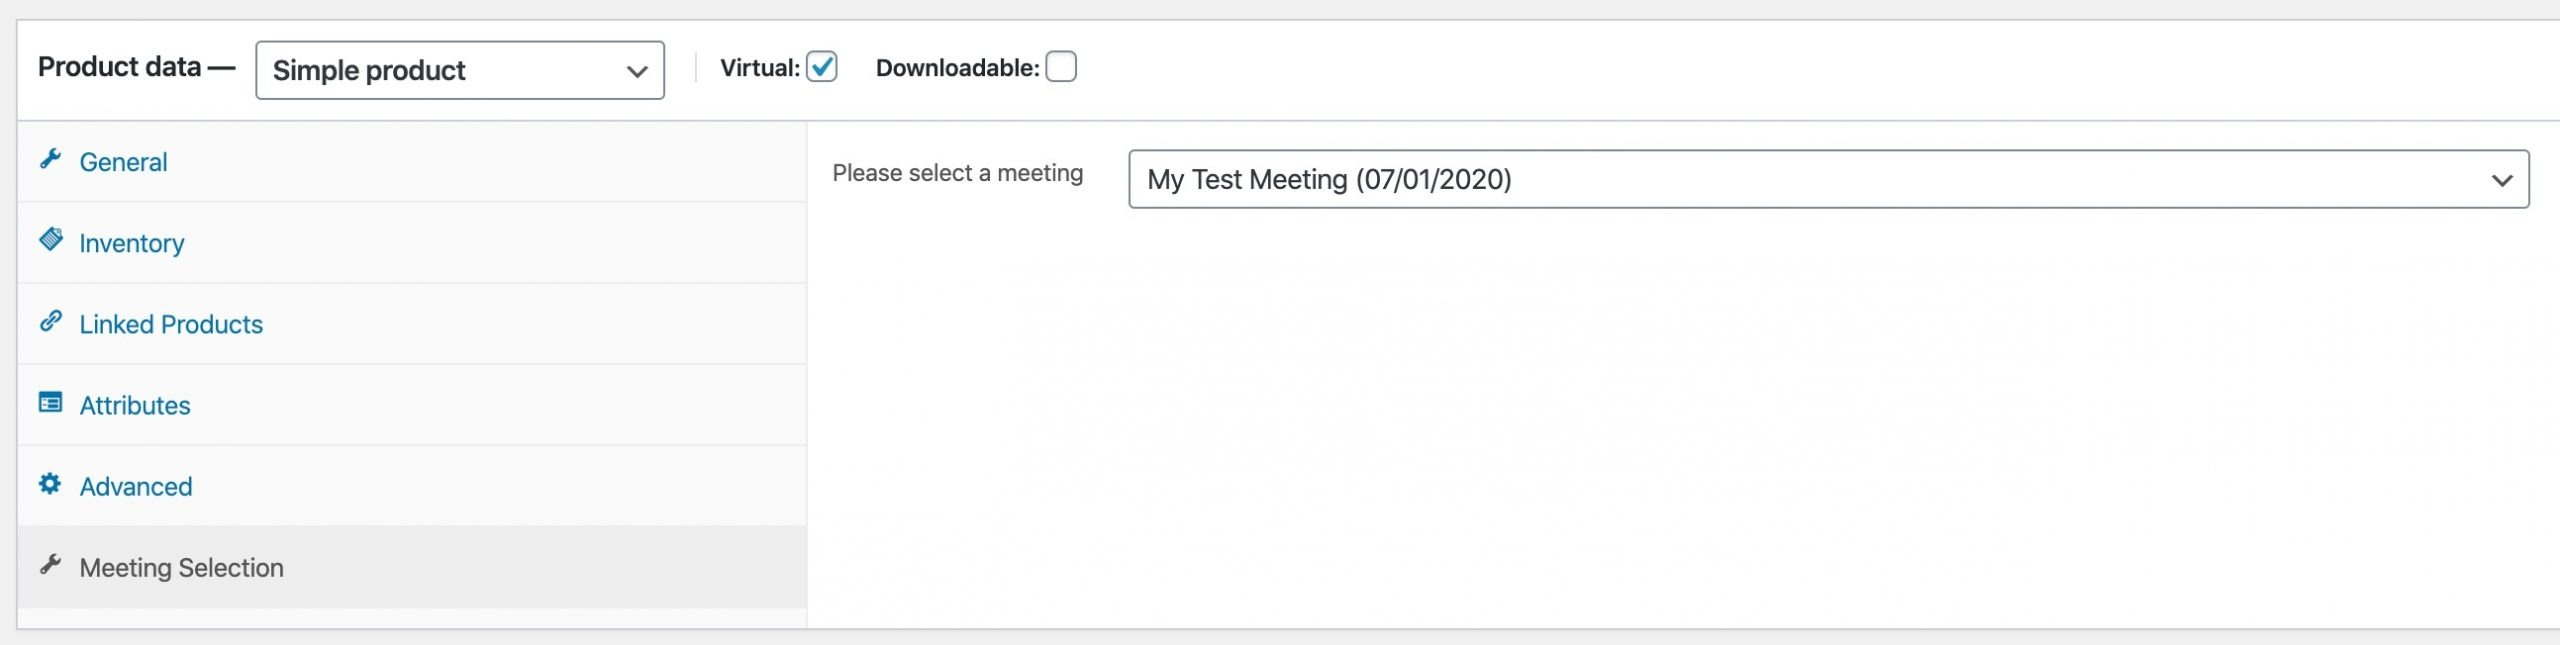 wp gotomeeting pro product settings - meeting selection